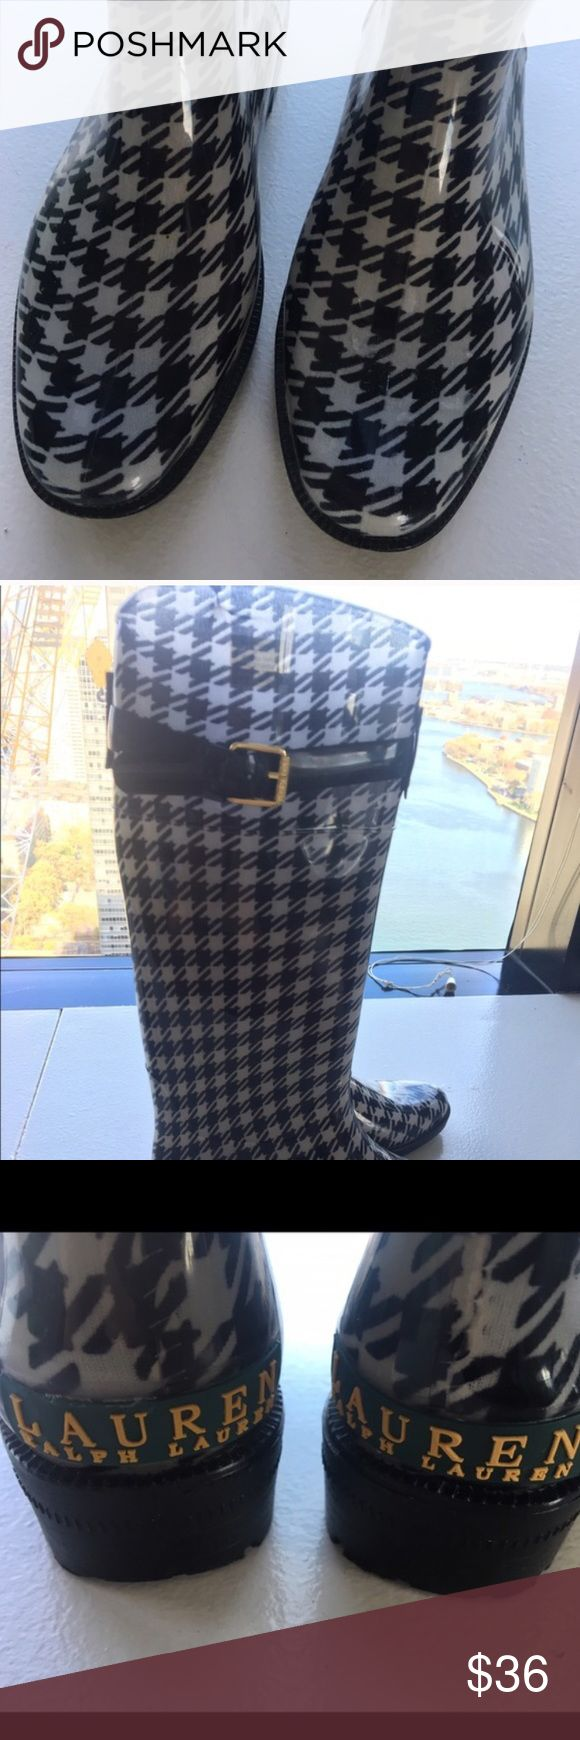 Ralph Lauren black and white rain boots Gently used, boots can have some sign of wear on the insoles. Boots are in good conditions Ralph Lauren Shoes Winter & Rain Boots